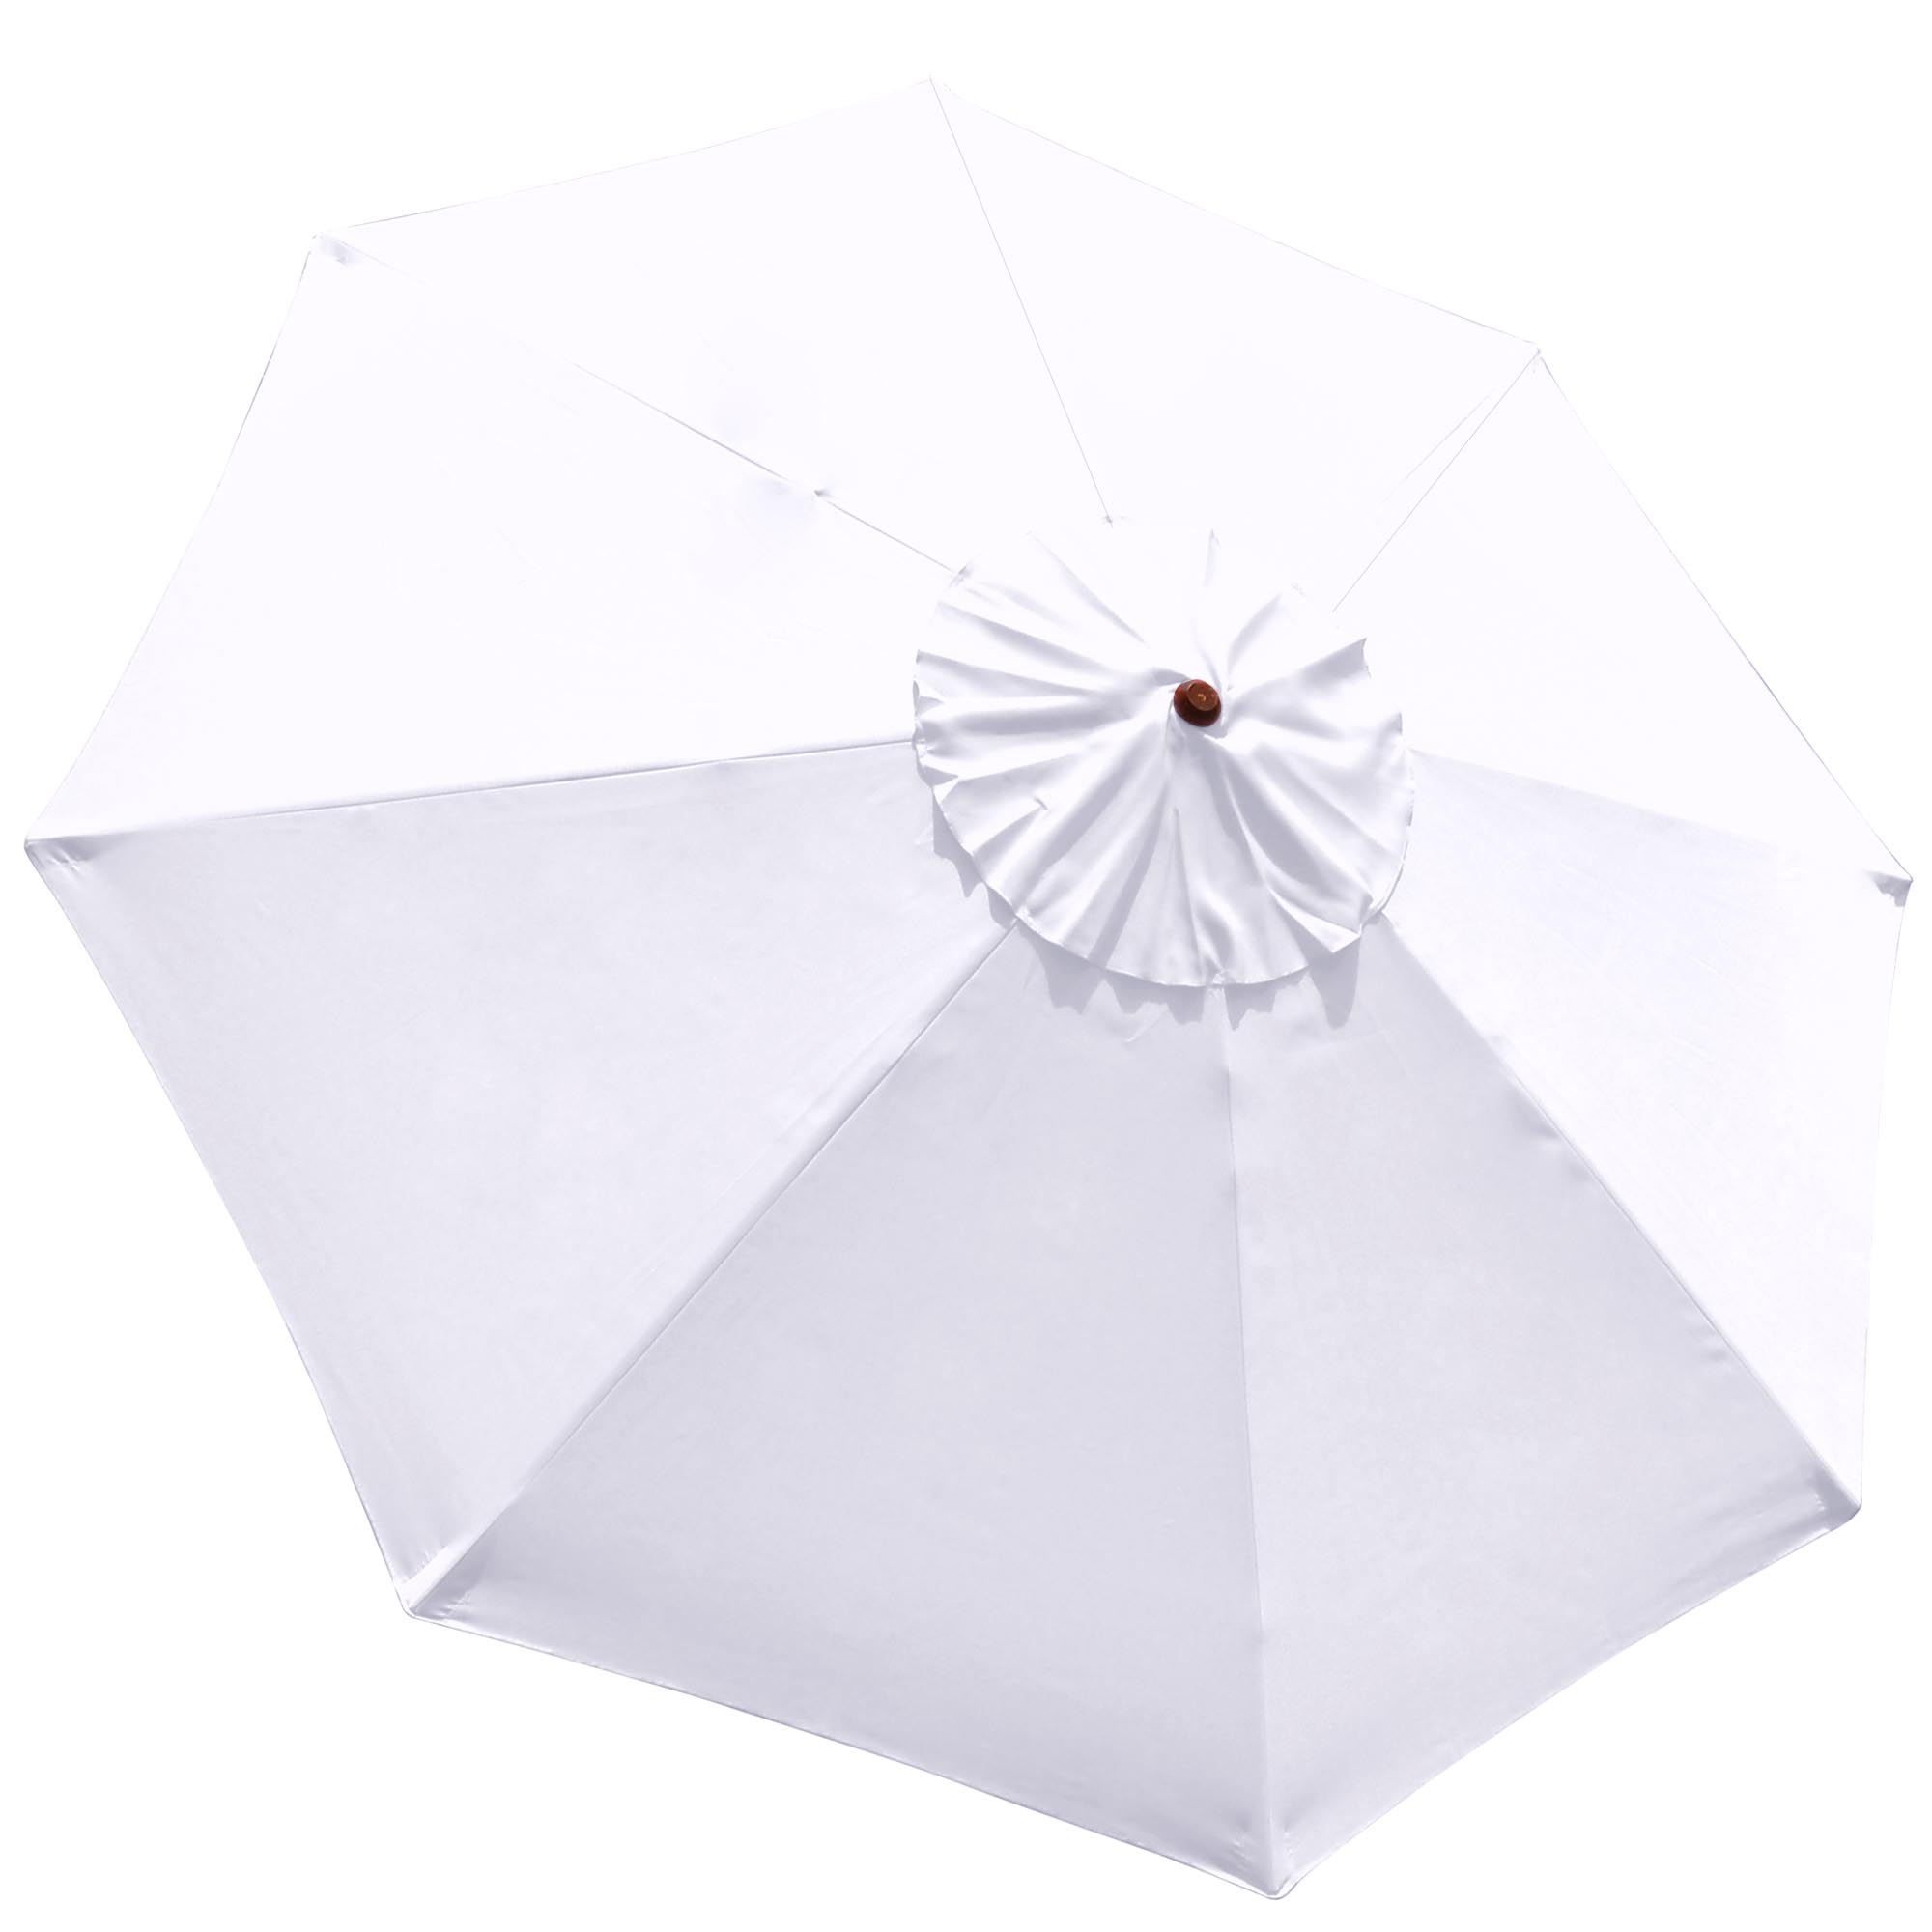 8 9 10 13 Umbrella Replacement Canopy 8 Rib Outdoor Patio Top Cover Only Opt